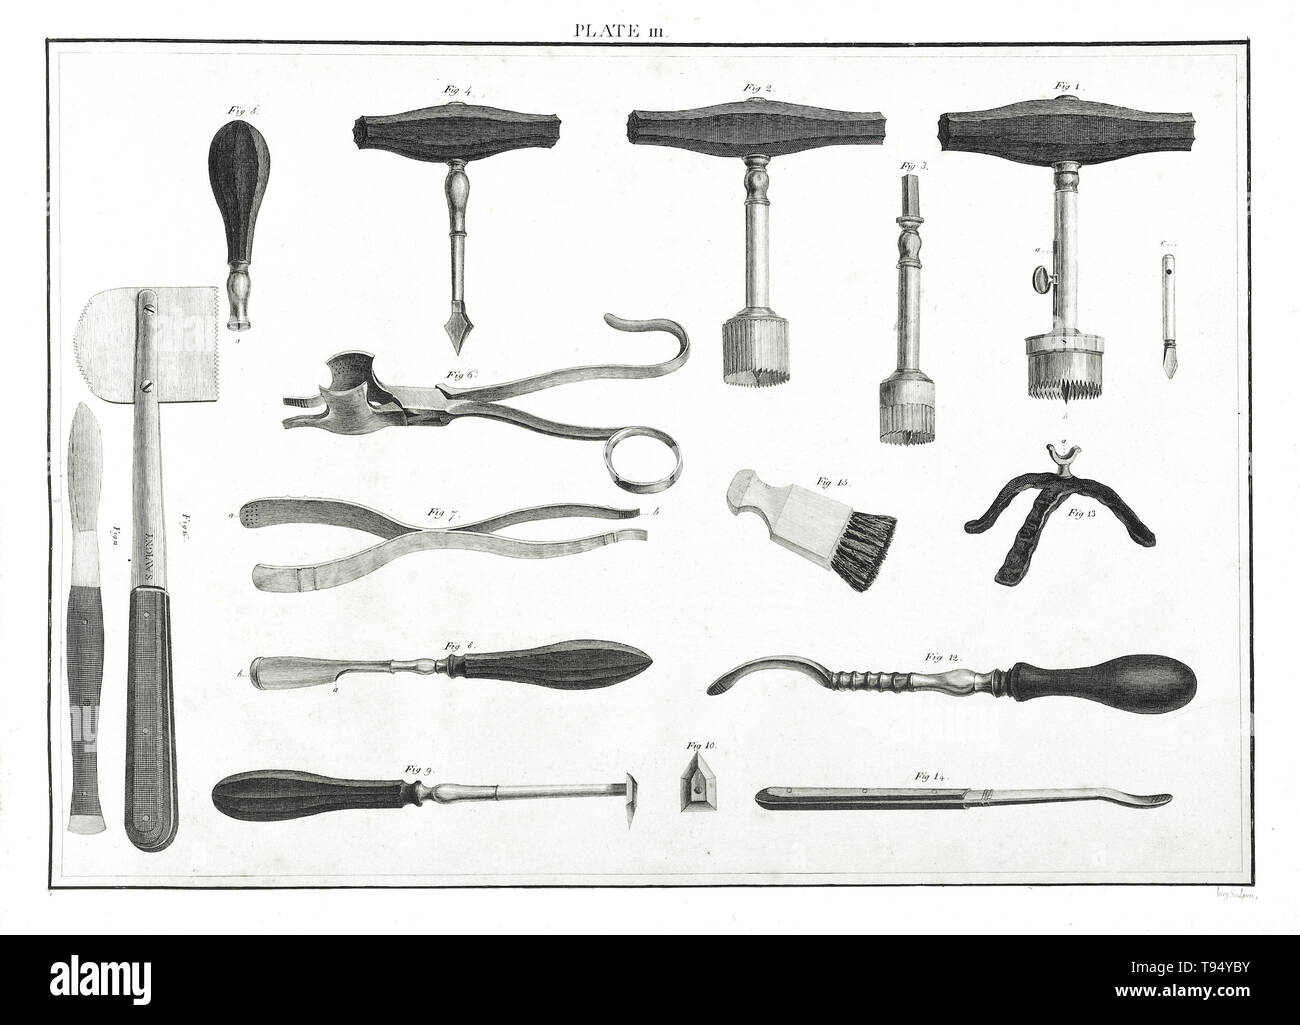 Various types of trephines, spring forceps, a lenticular, a raspatory, and a scalpel, used for trepanning. Trepanning is a surgical intervention in which a hole is drilled or scraped into the human skull, exposing the dura mater to treat health problems related to intracranial diseases. Cave paintings indicate that people believed the practice would cure epileptic seizures, migraines, mental disorders and the bone that was trepanned was kept as a charm to keep evil spirits away. - Stock Image